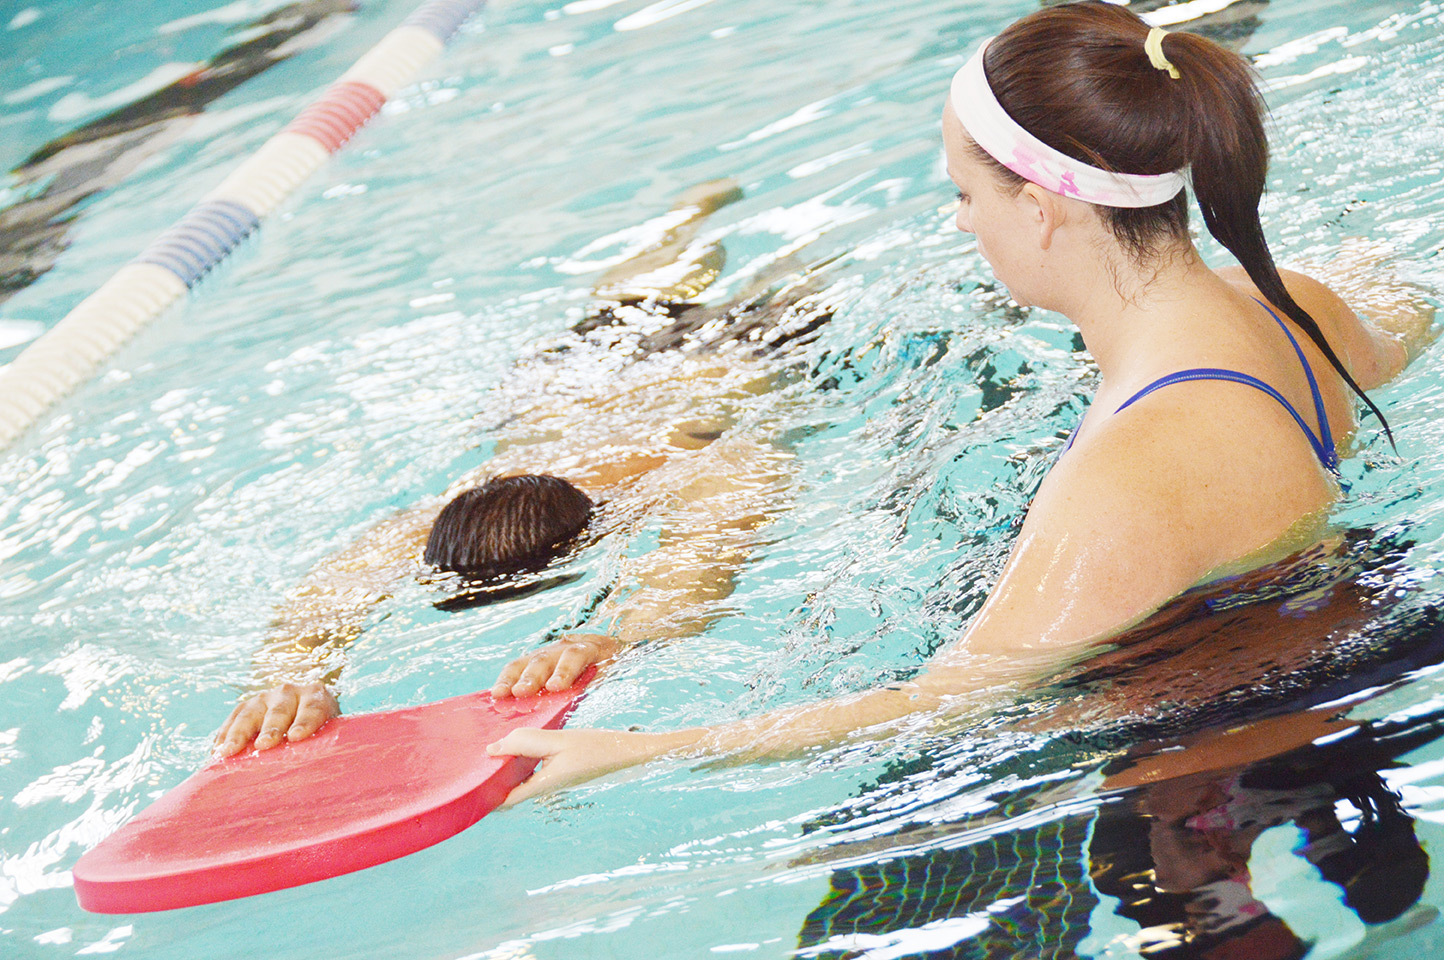 Student Learning to Swim